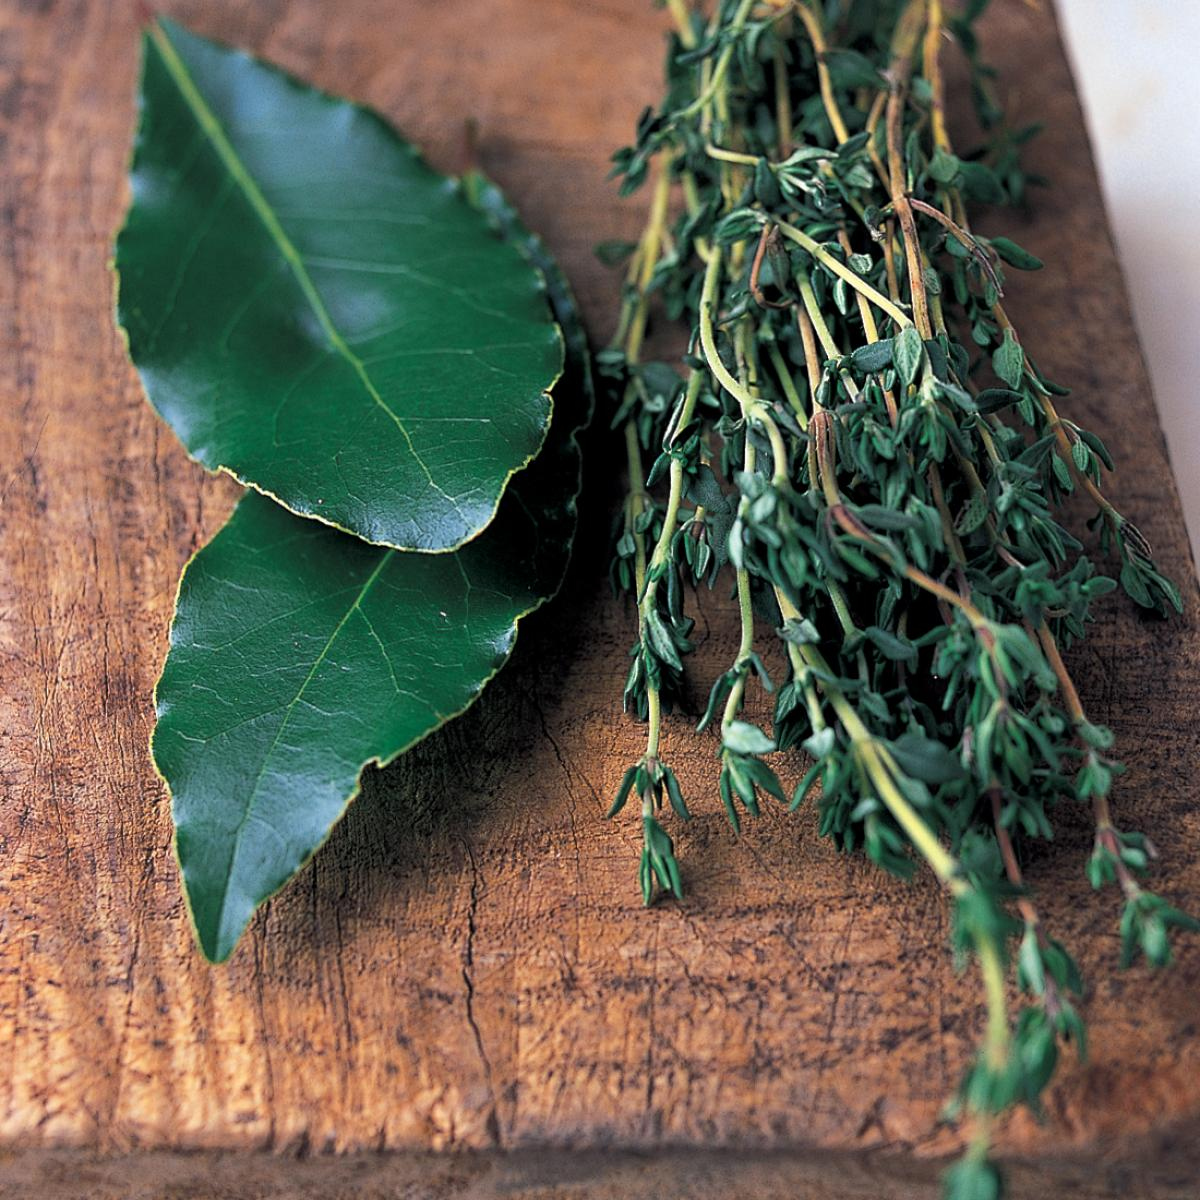 Ingredient pork bay leaves left